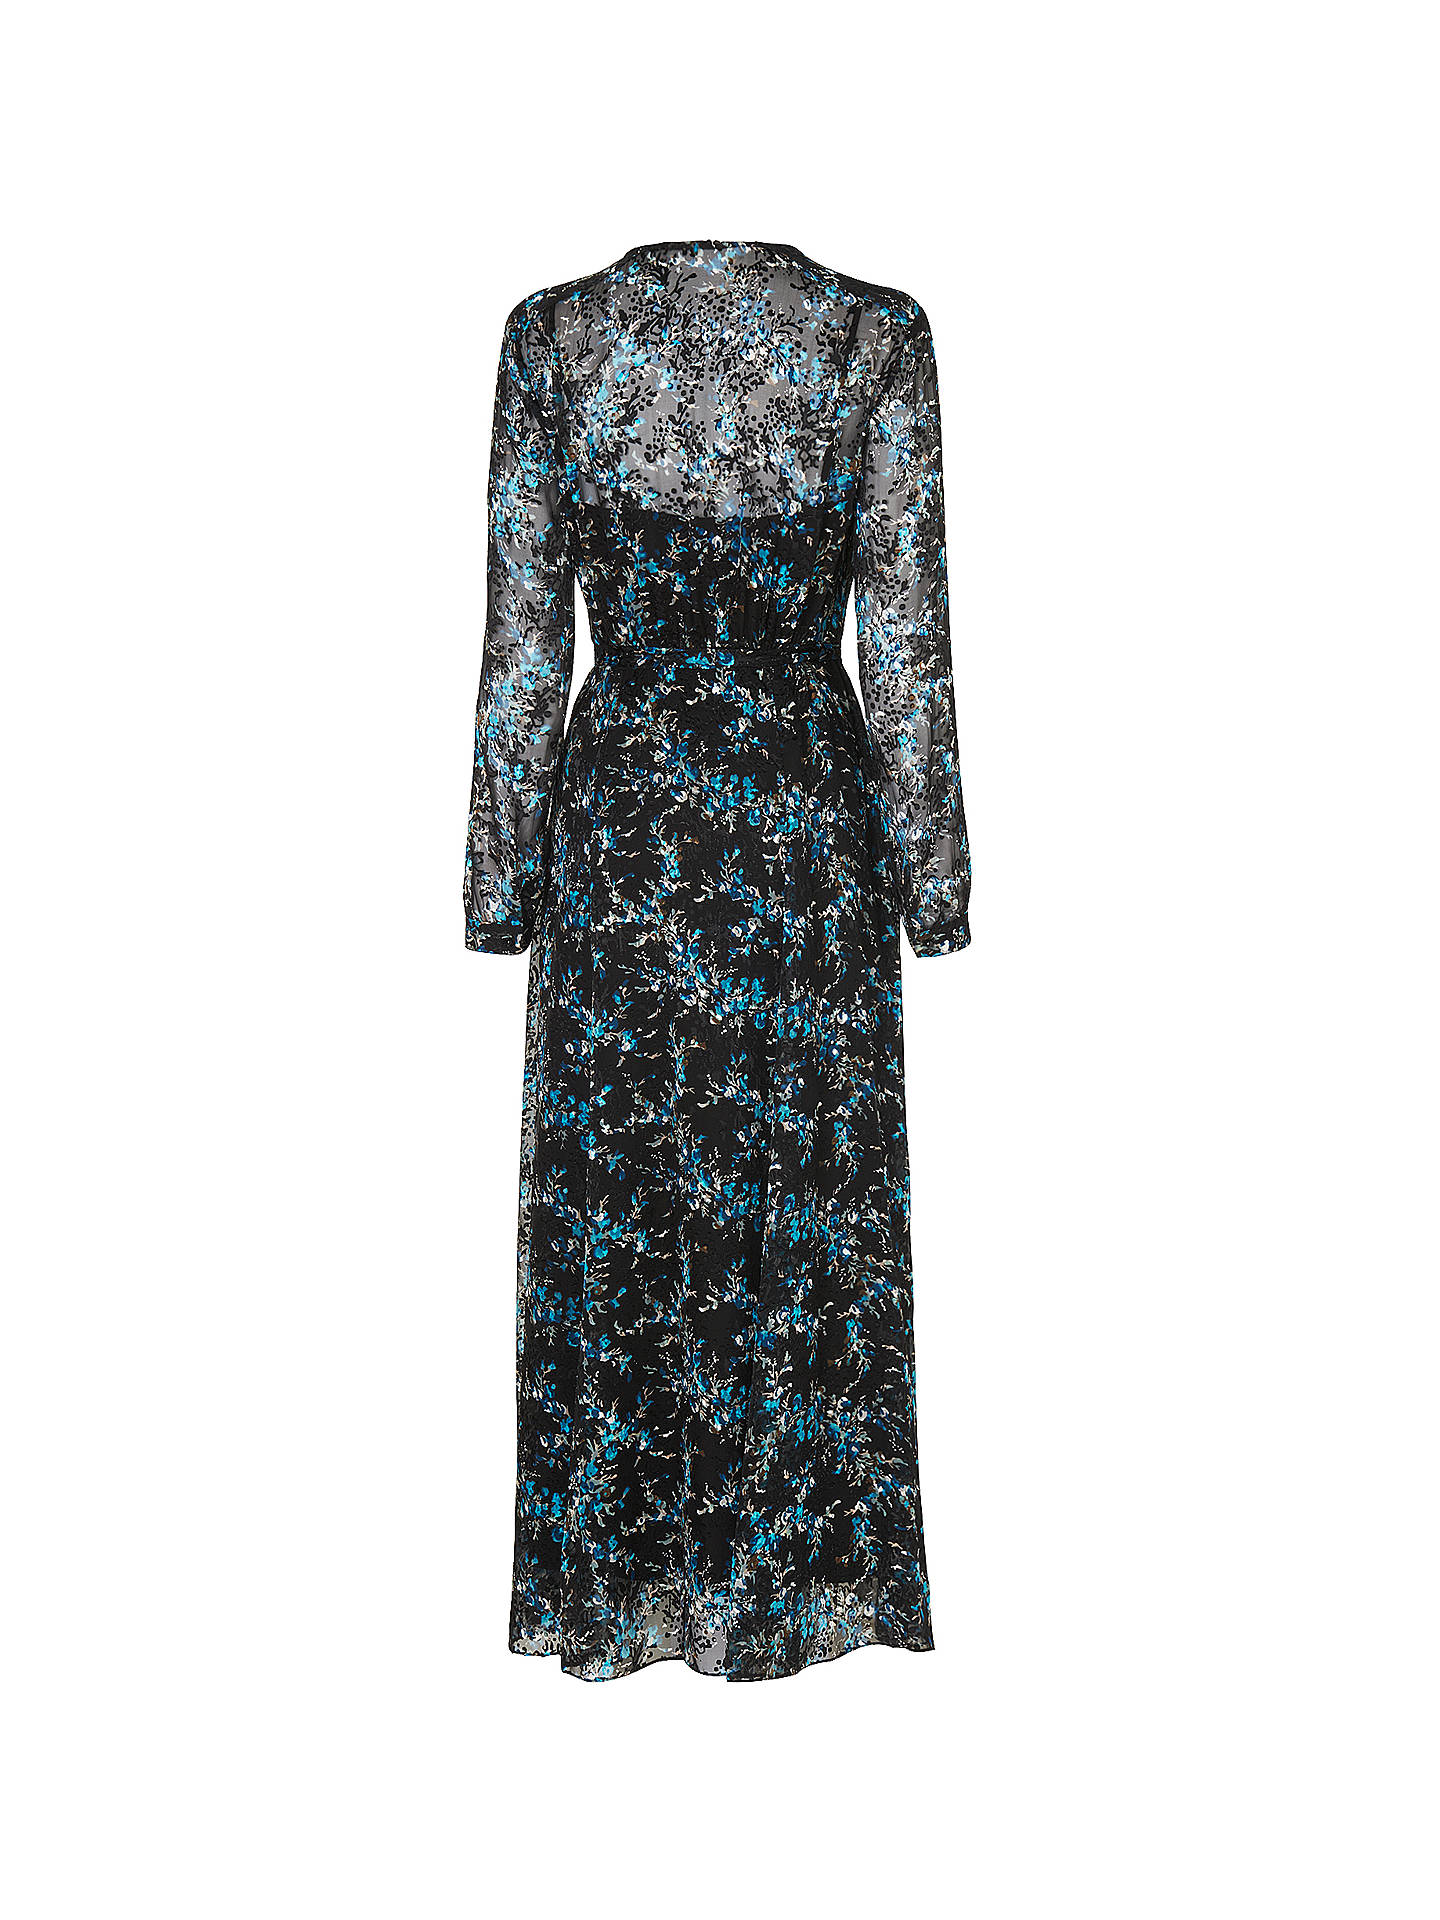 Buy L.K. Bennett Cersei Dress, Multi, 6 Online at johnlewis.com